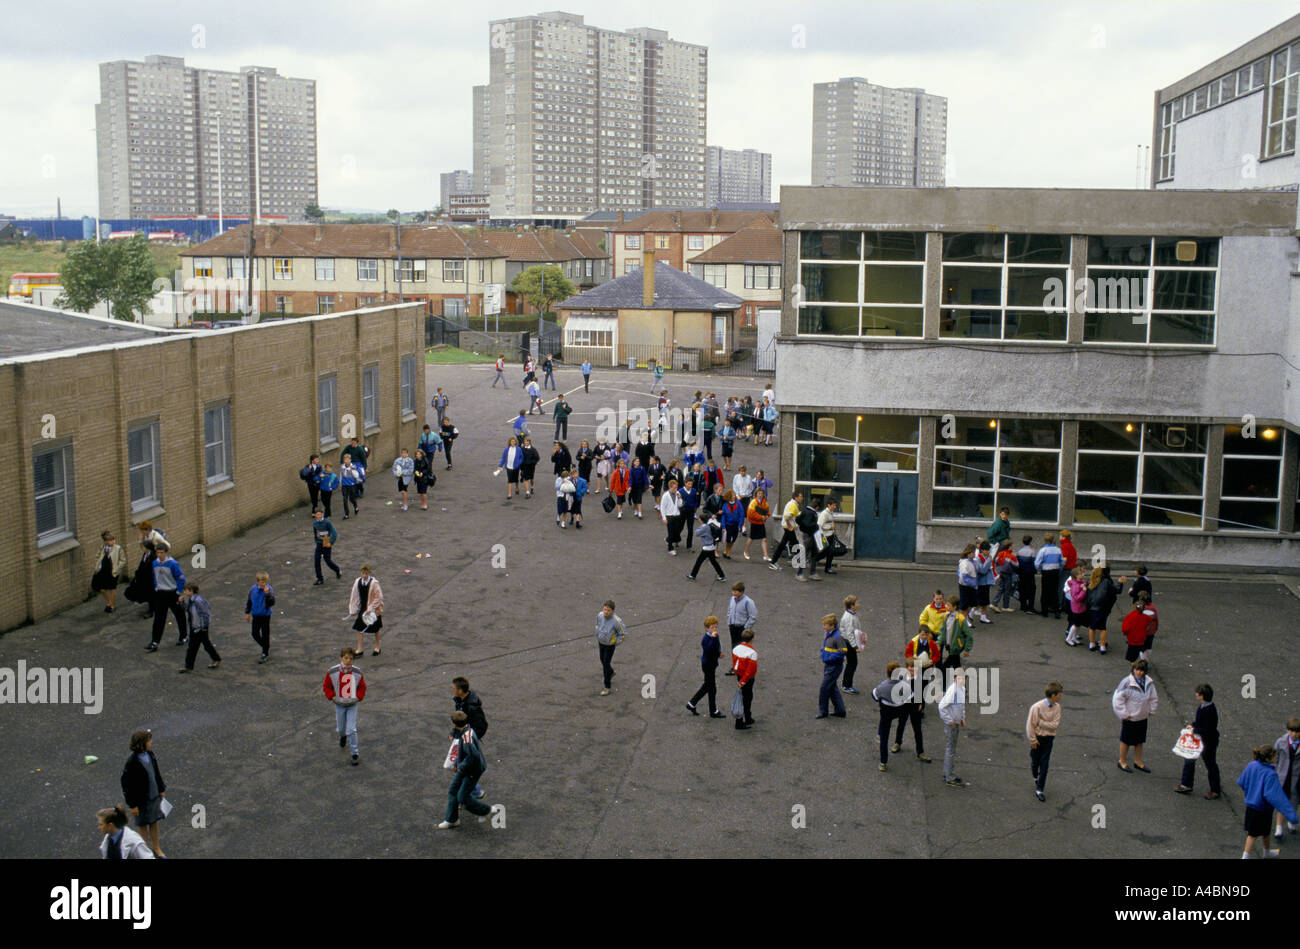 CHILDREN IN THE PLAYGROUND, HOLYROOD SECONDARY SCHOOL, GLASGOW. - Stock Image